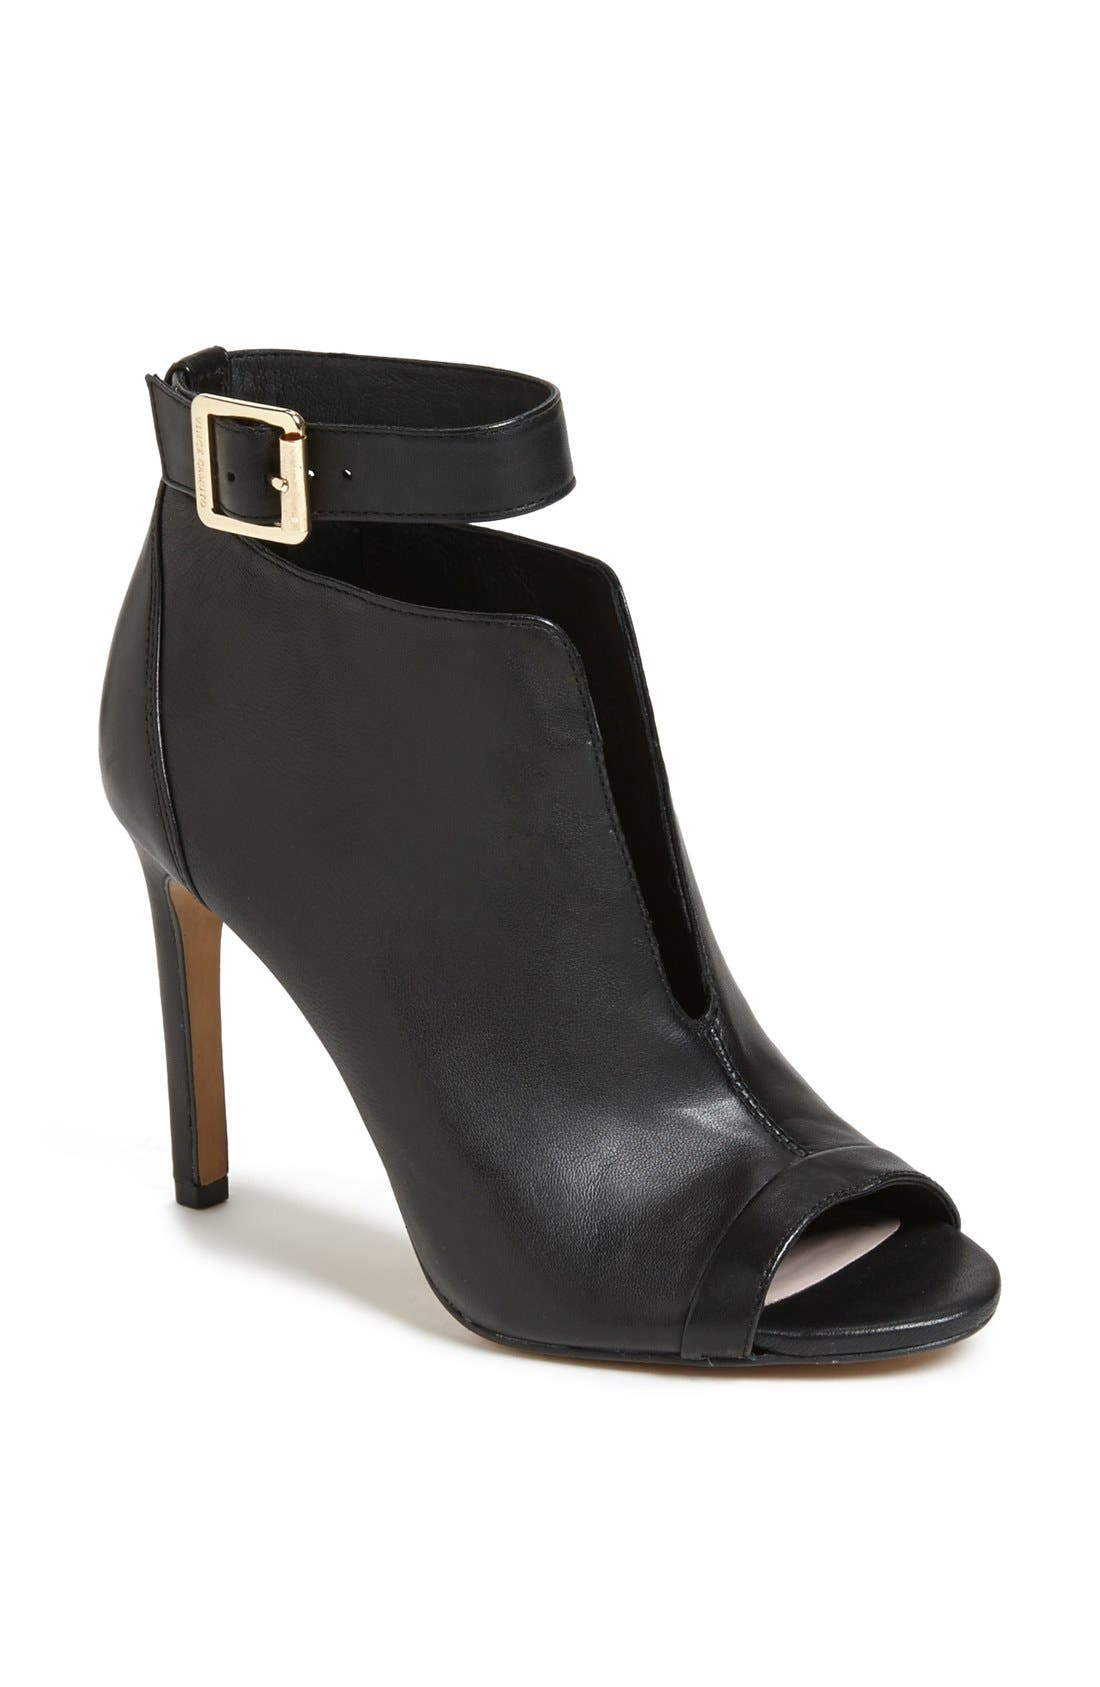 Main Image - Vince Camuto 'Kalisi' Bootie